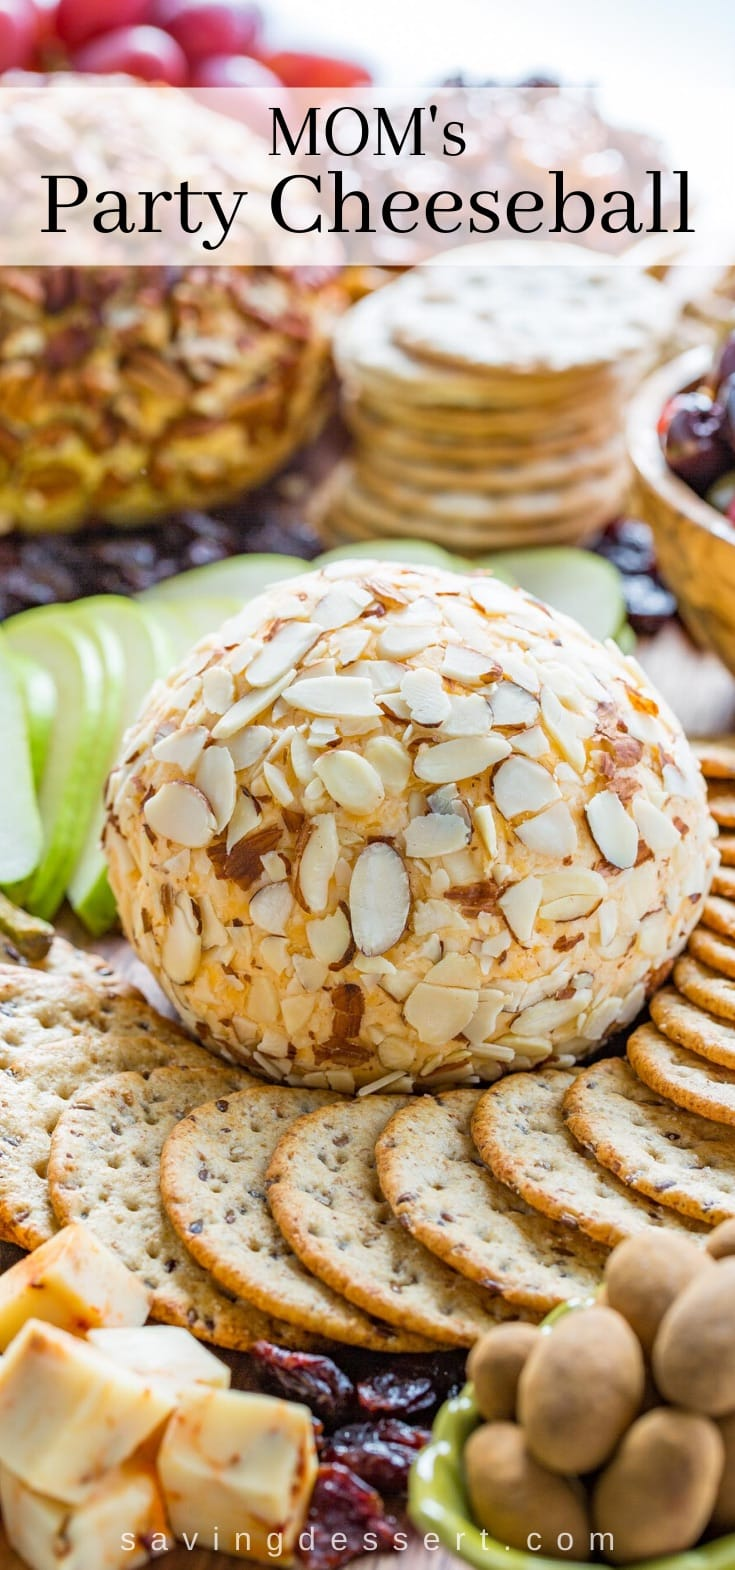 A cheeseball covered in sliced almonds on a platter of crackers, fruit, nuts and cheese